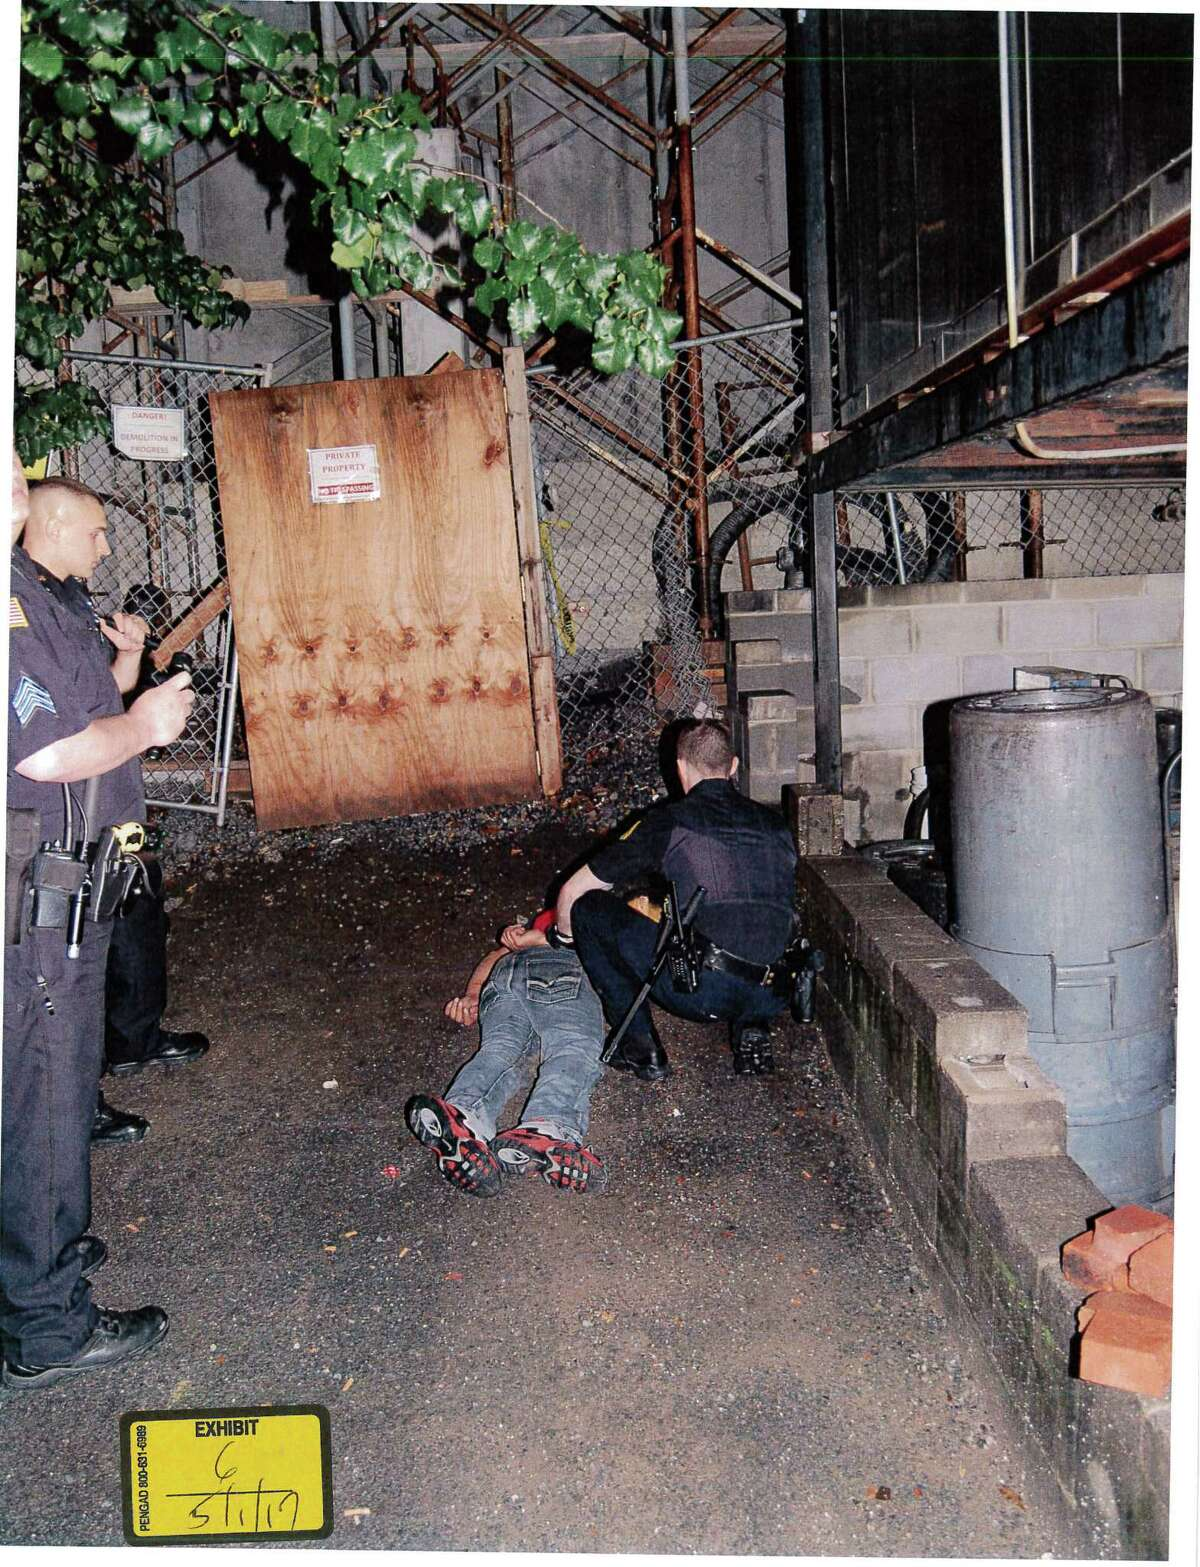 A photo from the Aug. 31, 2013 scene where Saratoga Springs police said Darryl Mount fell from scaffolding. Mount is on the ground. The photo is an exhibit in the wrongful death lawsuit brought by Mount's mother.